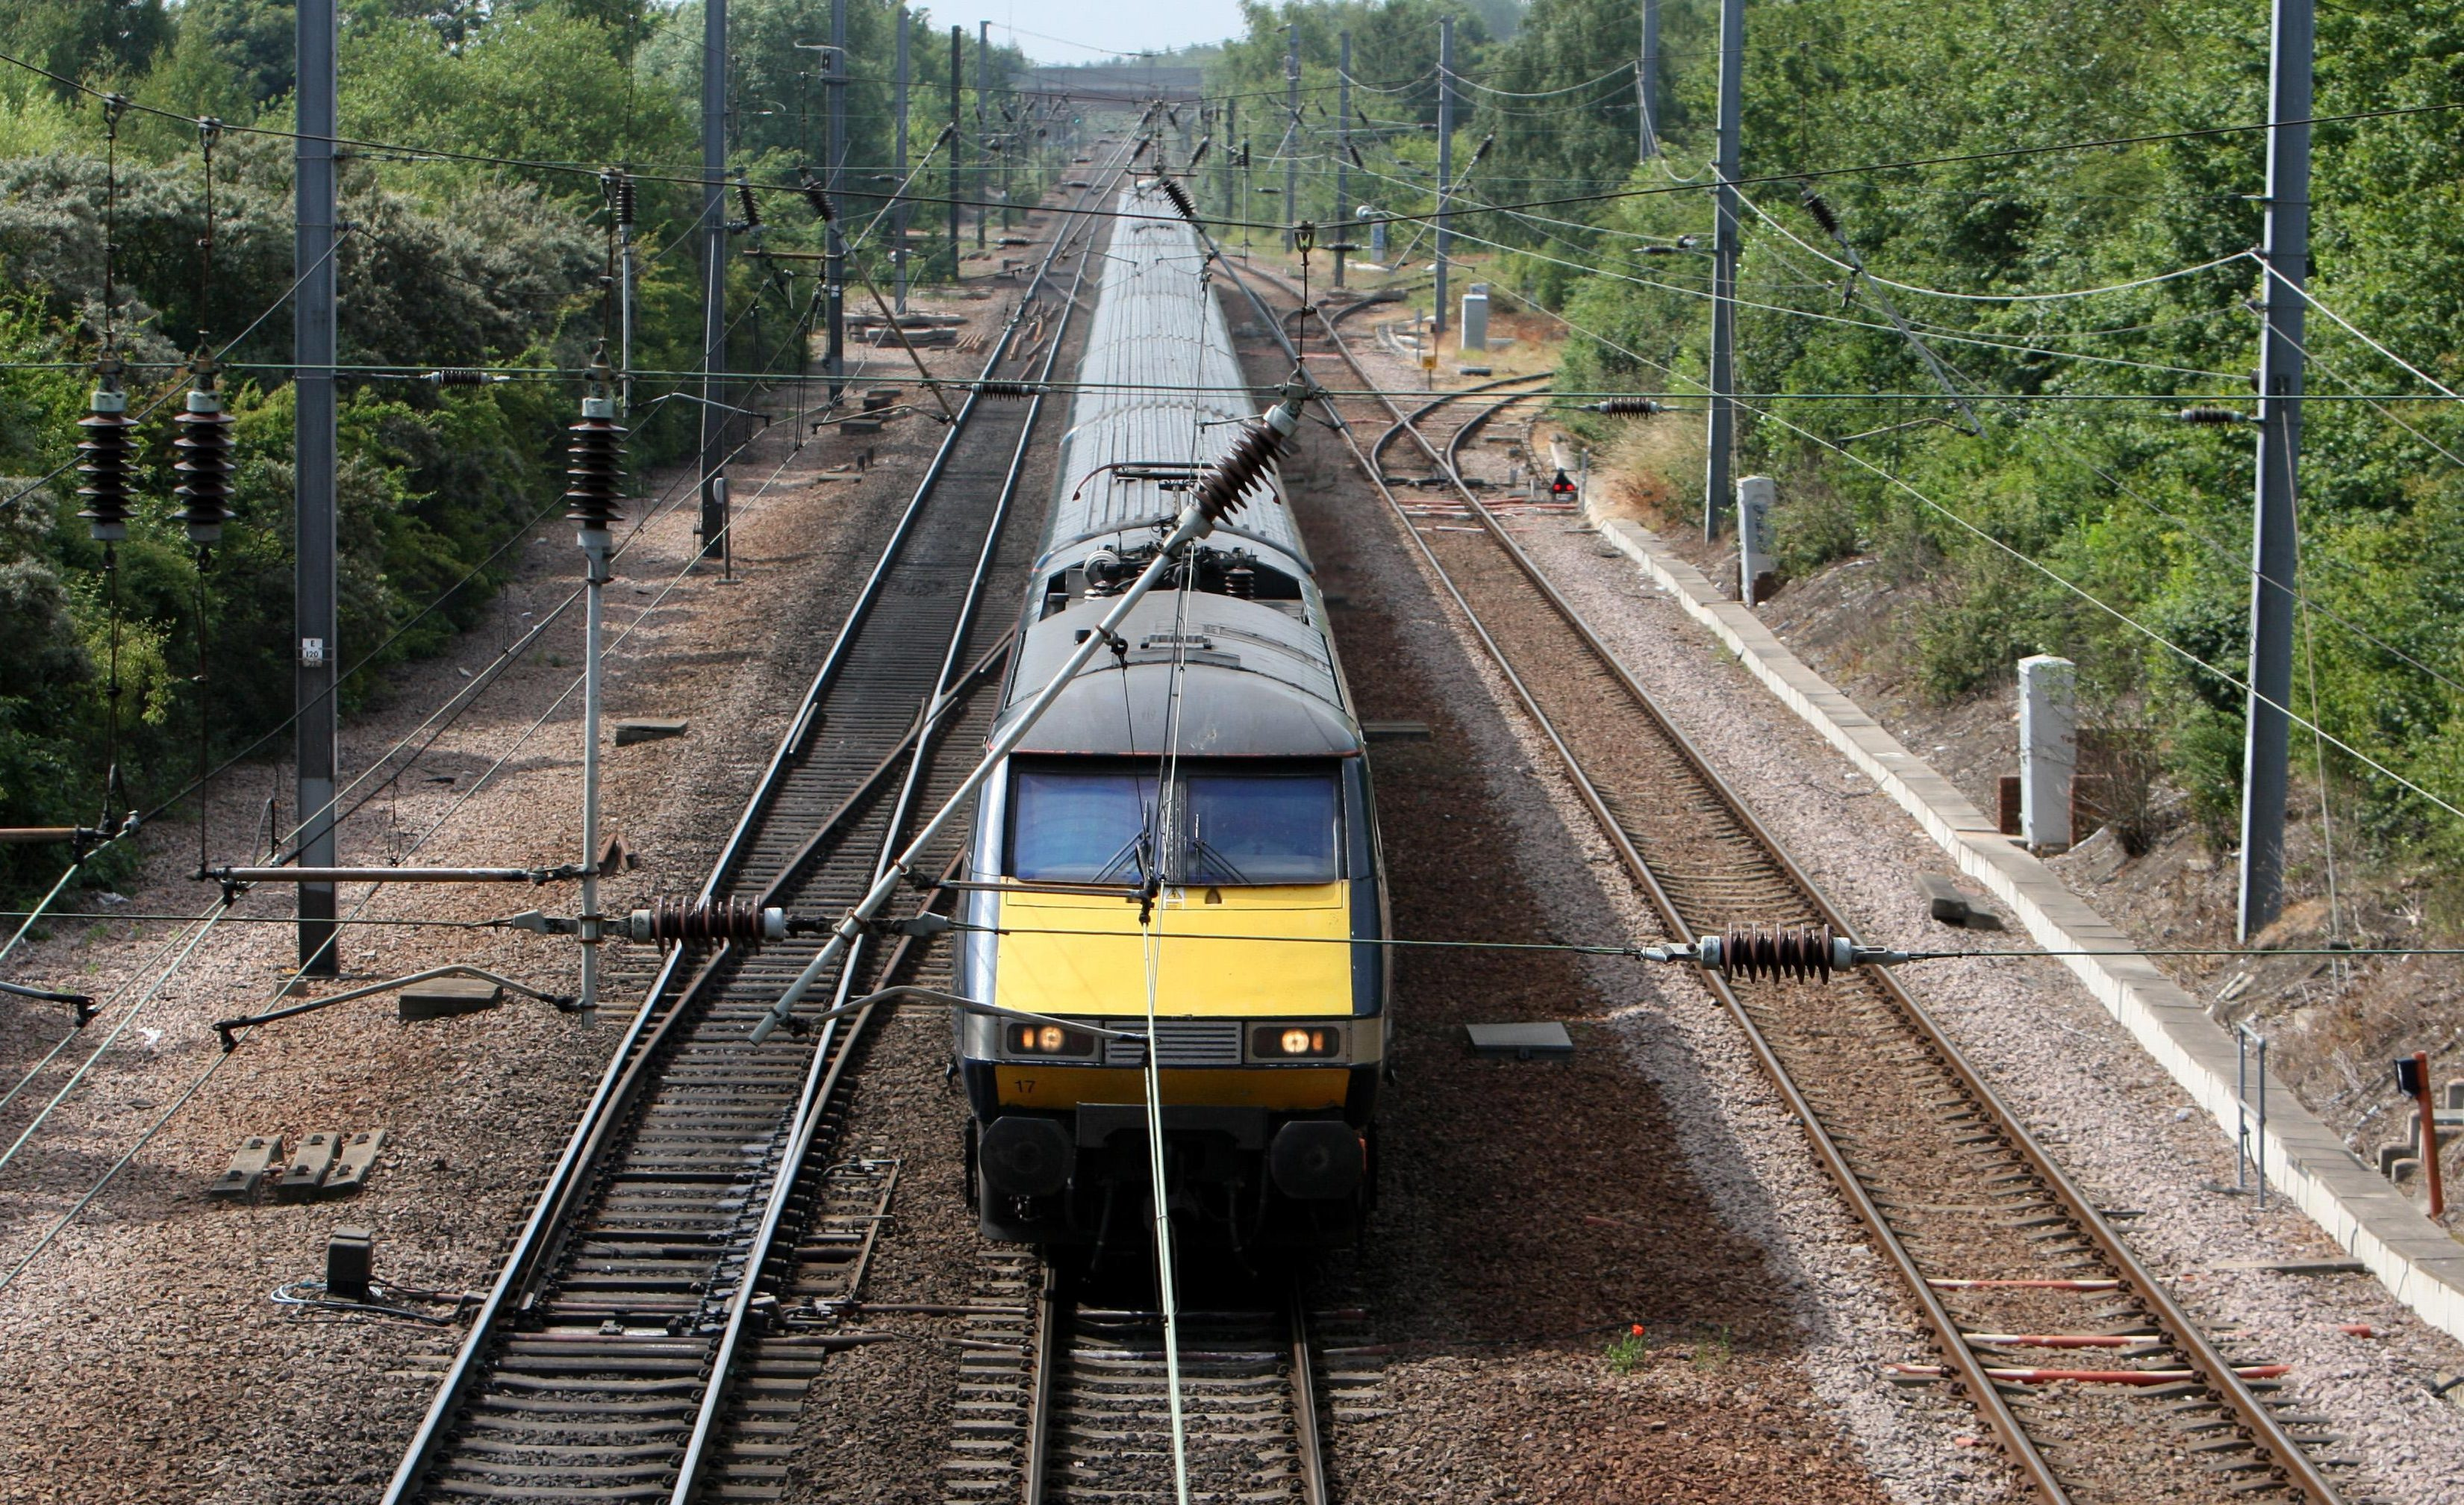 The 10-year deal allows the company to operate services between Edinburgh and London.